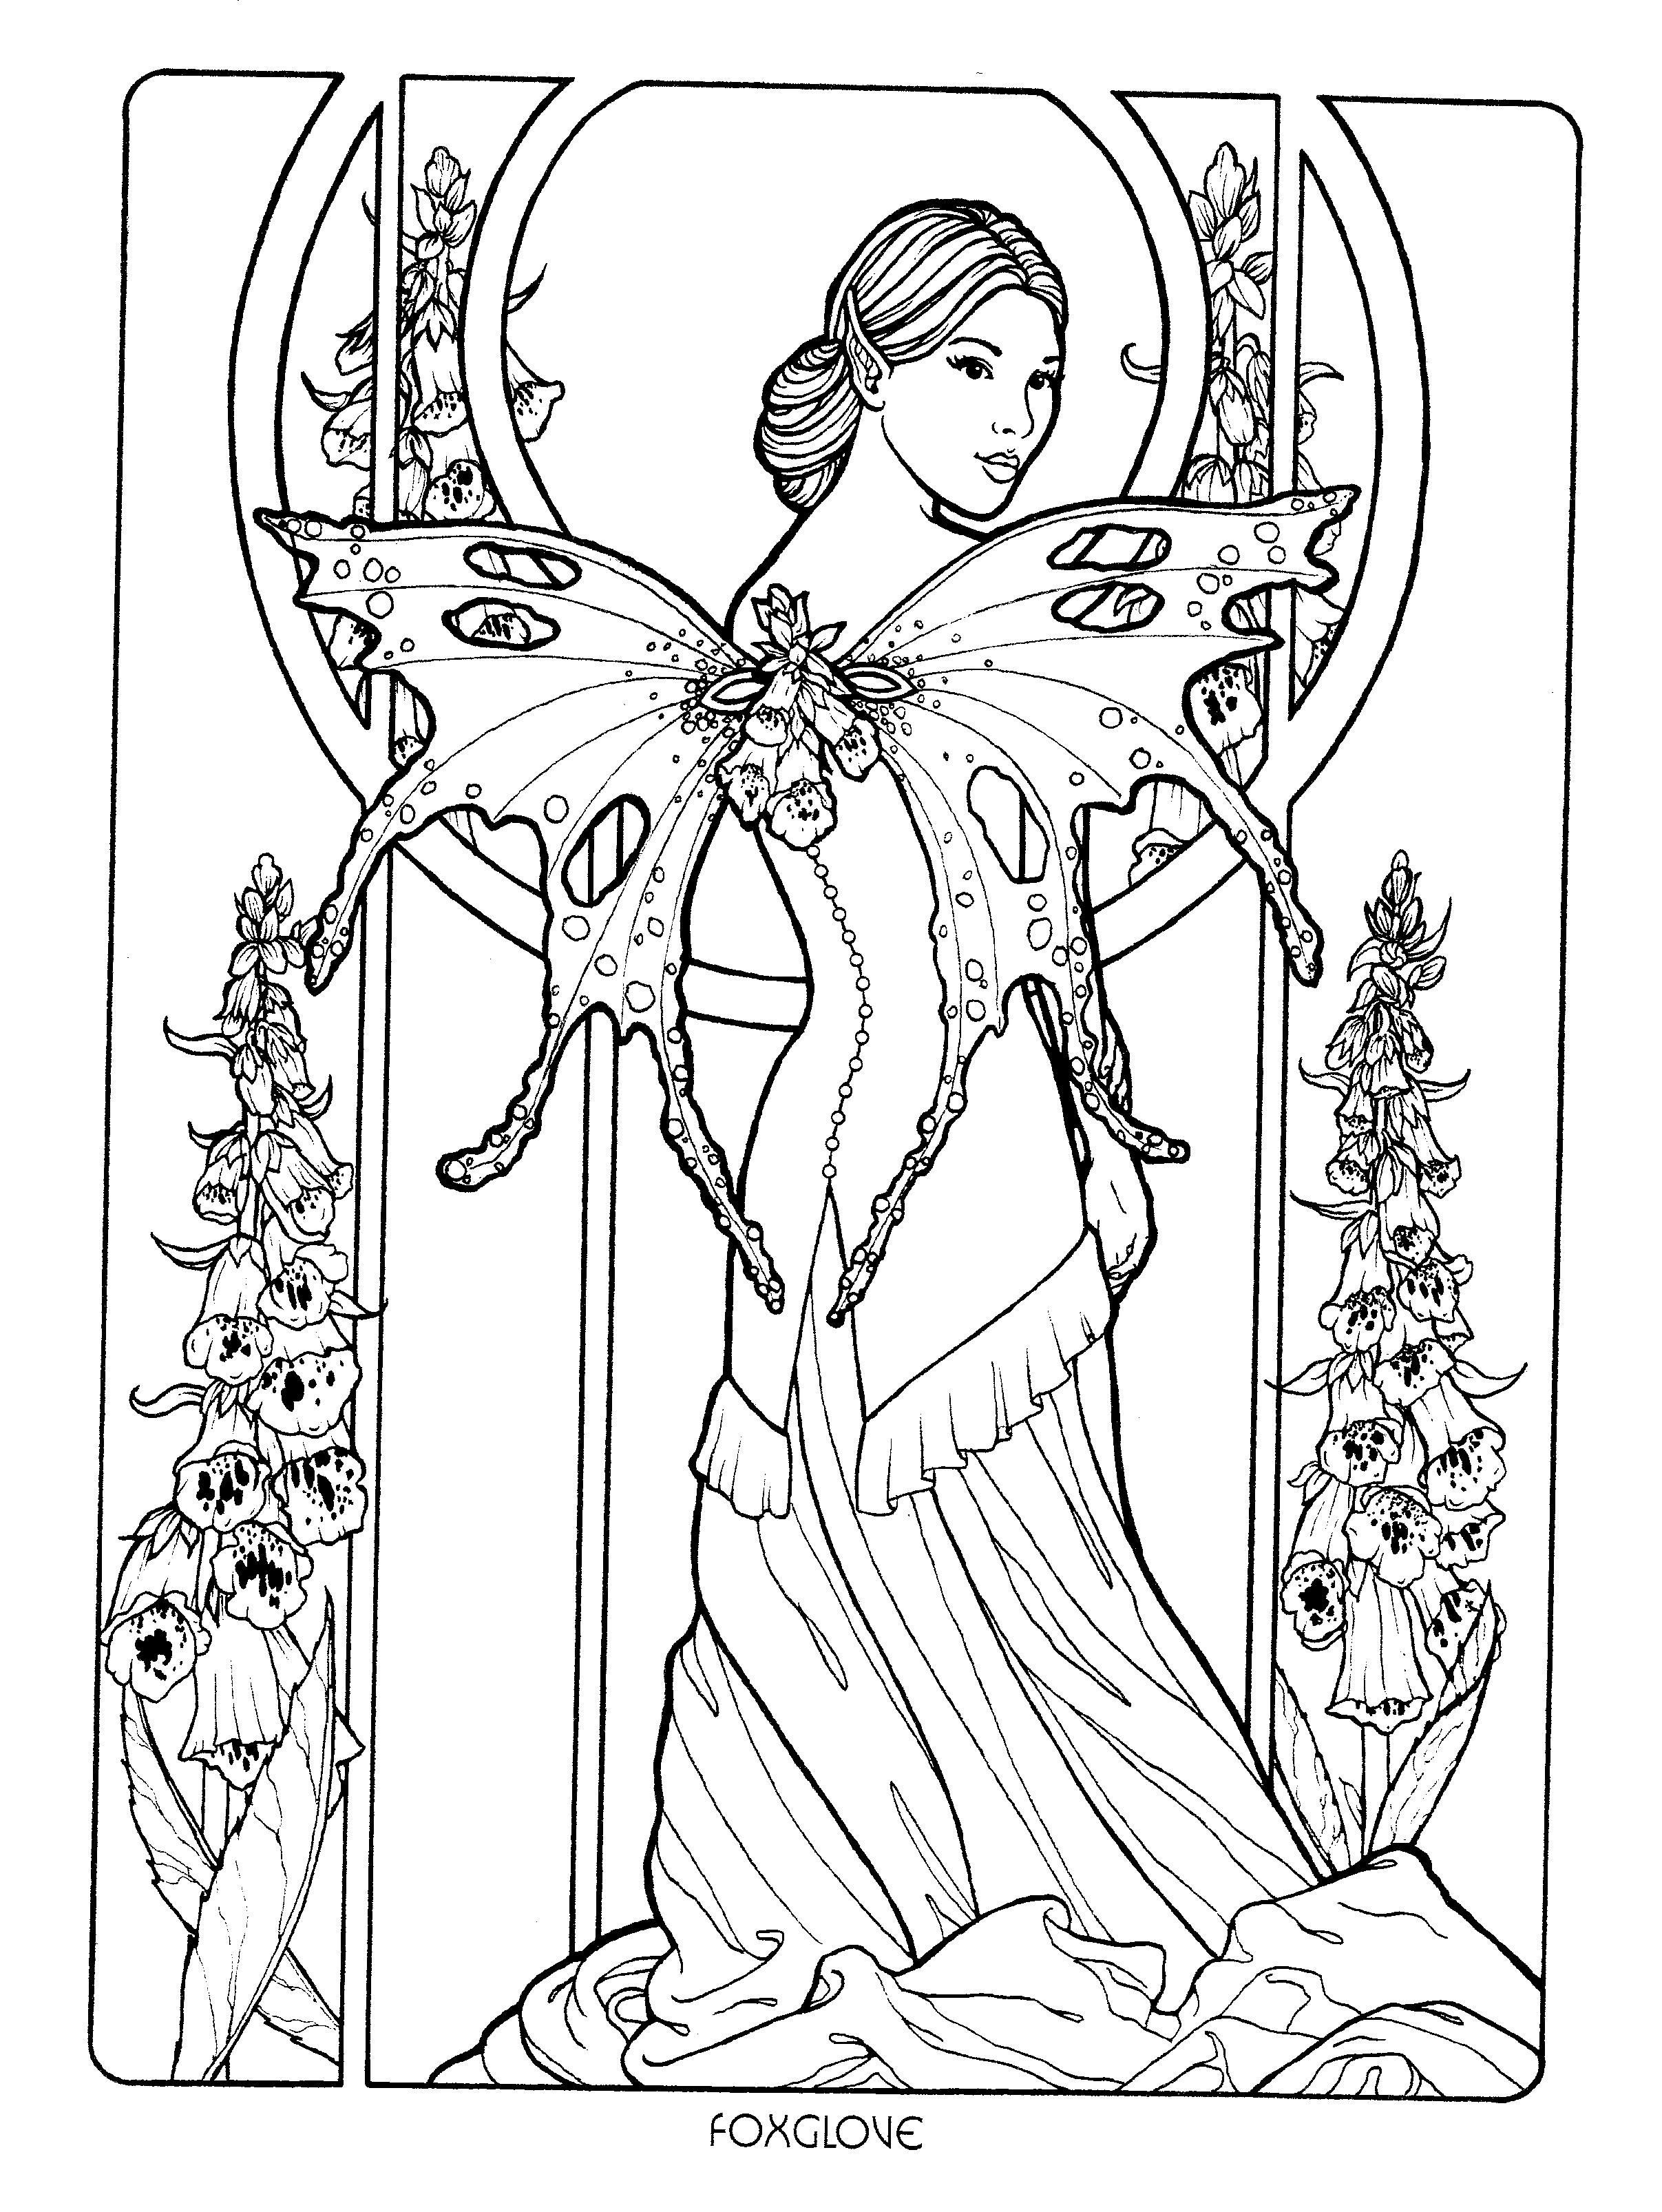 View Source Image Fairy Coloring Pages Fairy Coloring Mermaid Coloring Pages [ 3212 x 2414 Pixel ]